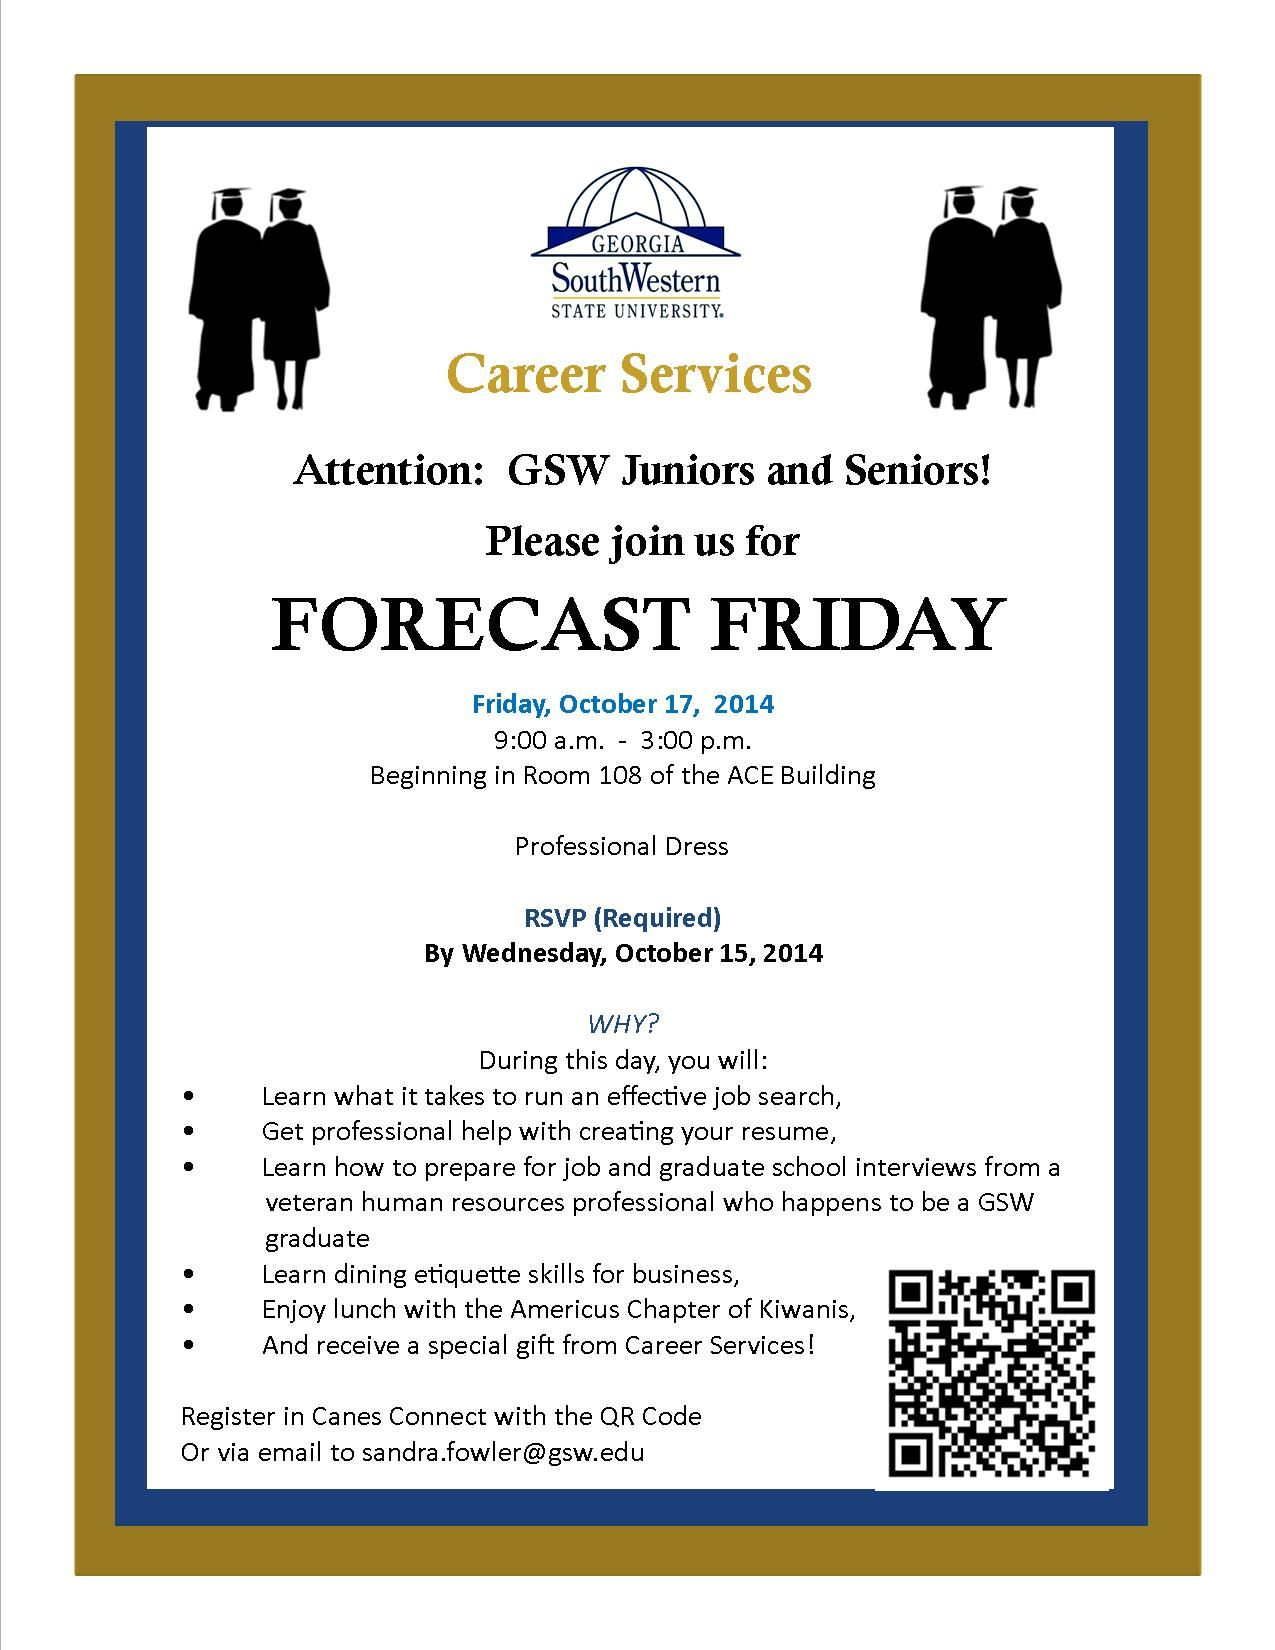 "Attention Students! This Friday, Oct 17th, 9 am-3 pm, Career Services will host ""Forecast Friday""! Register on Canes Connect! Limited space!"